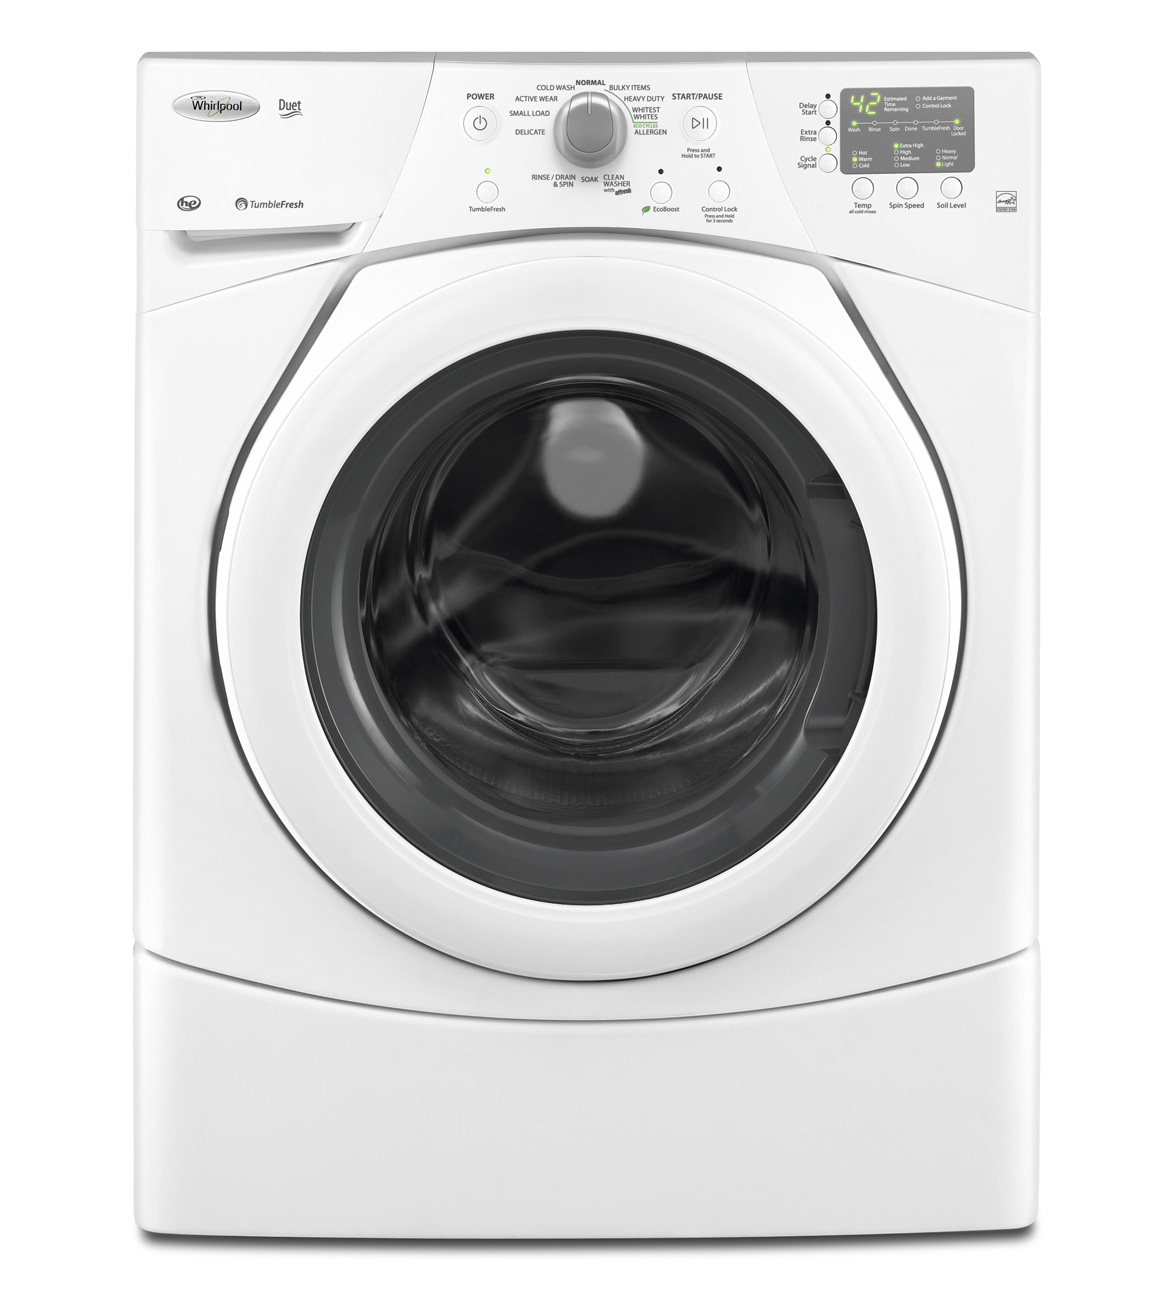 Whirlpool Duet 3.5 cu. ft. High-Efficiency Front Load Washer in White (Model: WFW9151YW)  - Reviews of Top 11 Top Load Washers